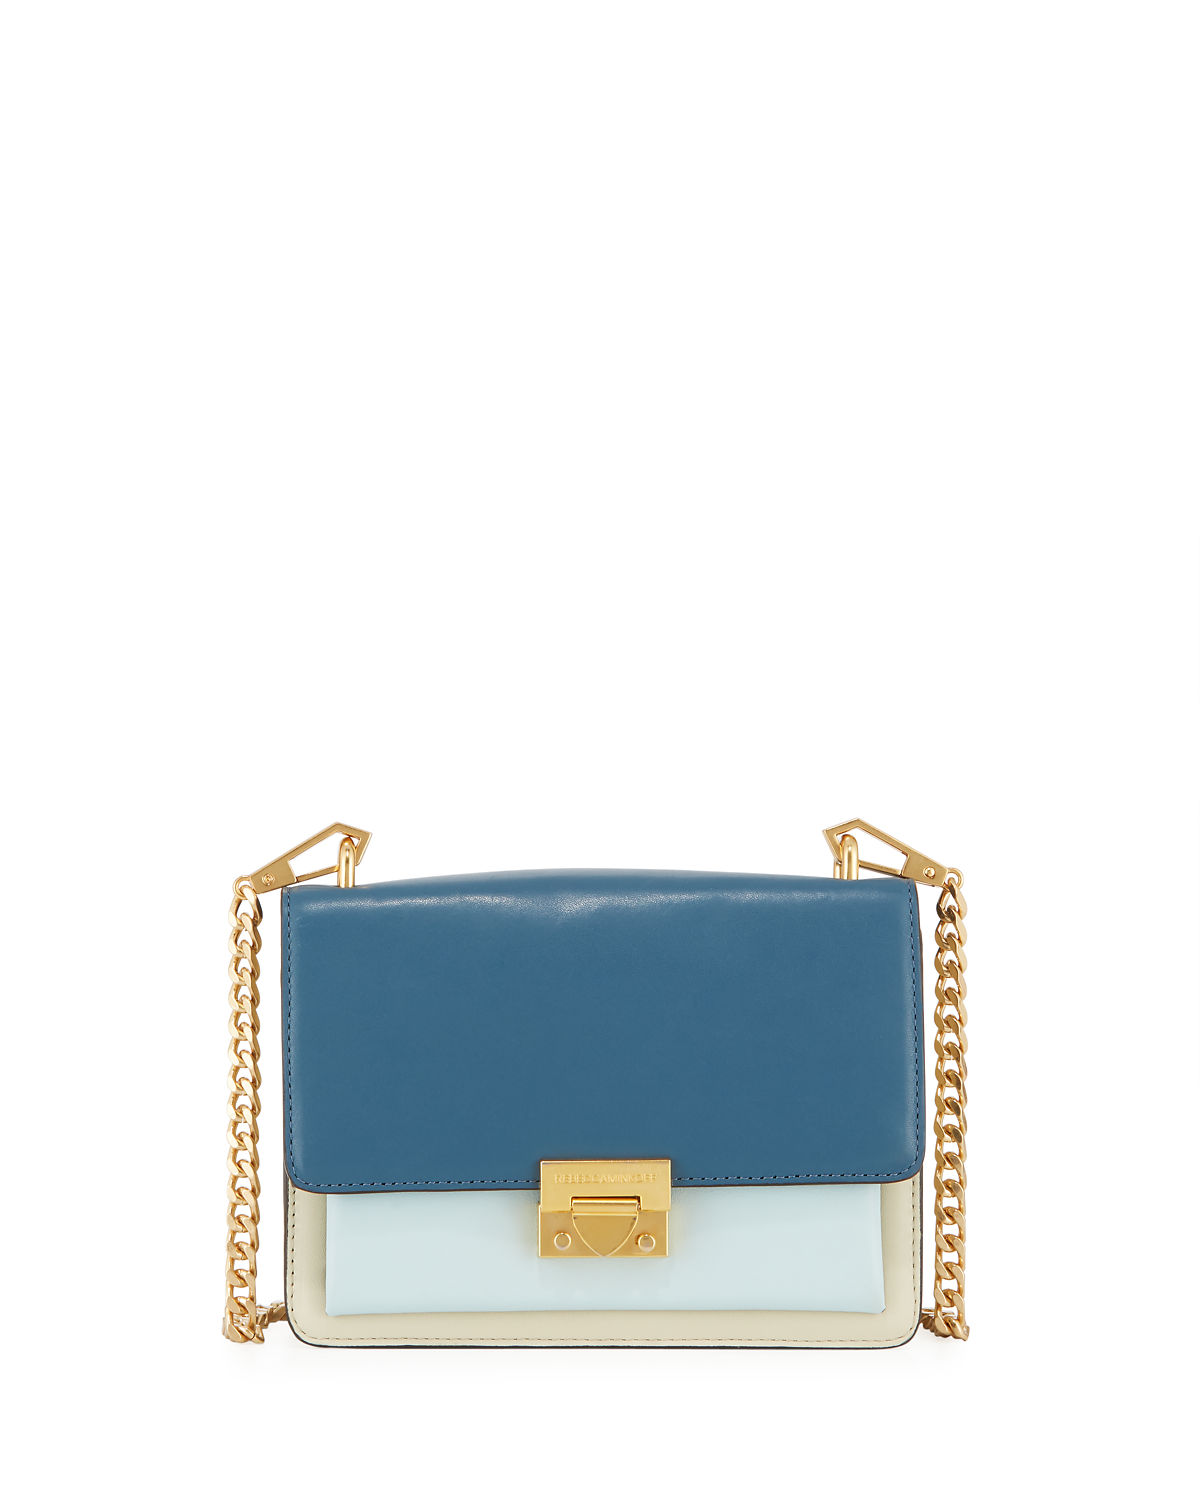 Christy Small Colorblock Shoulder Bag